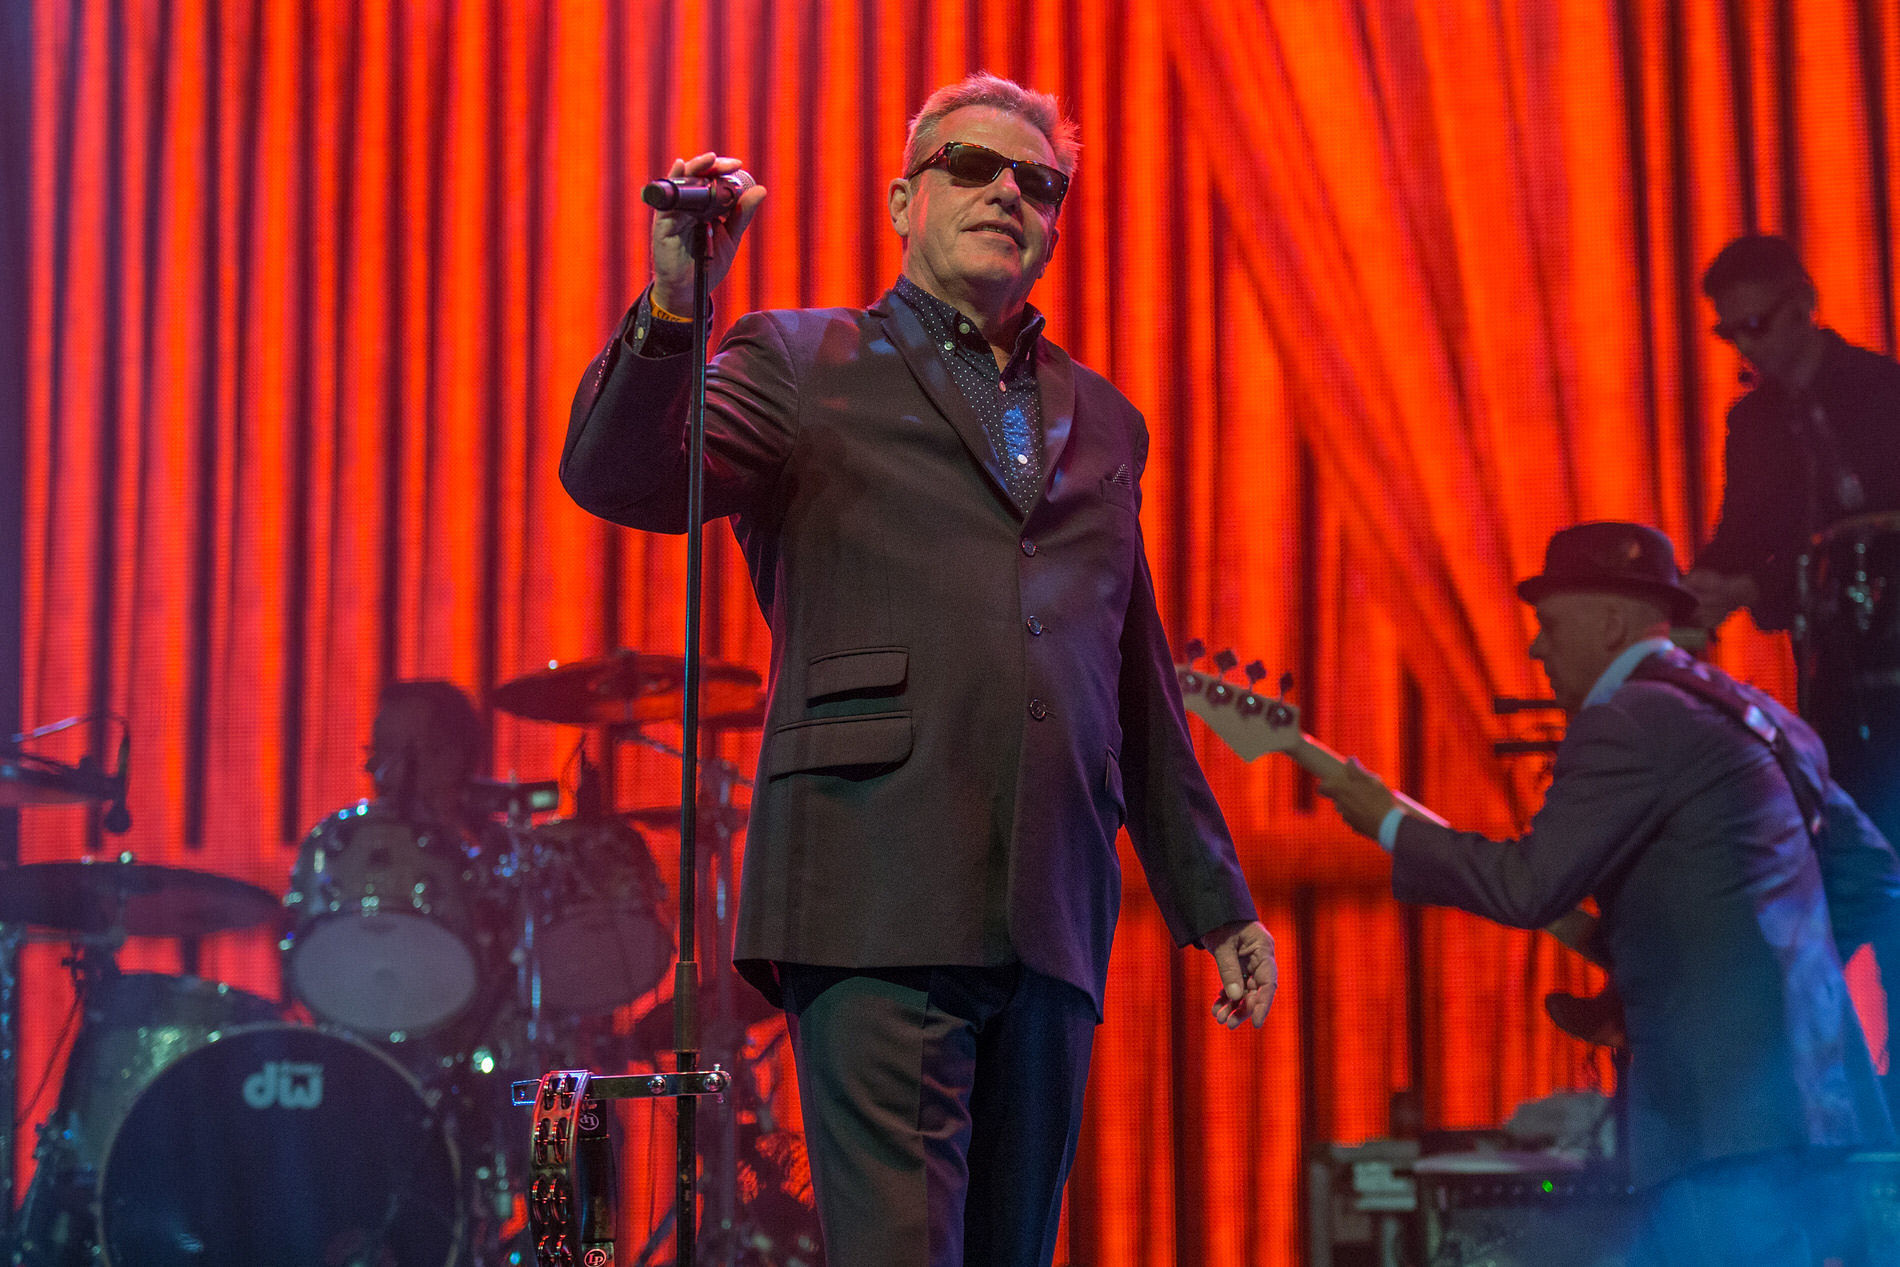 101-CampBestival2017-Madness-RB-IMG_4825.jpg